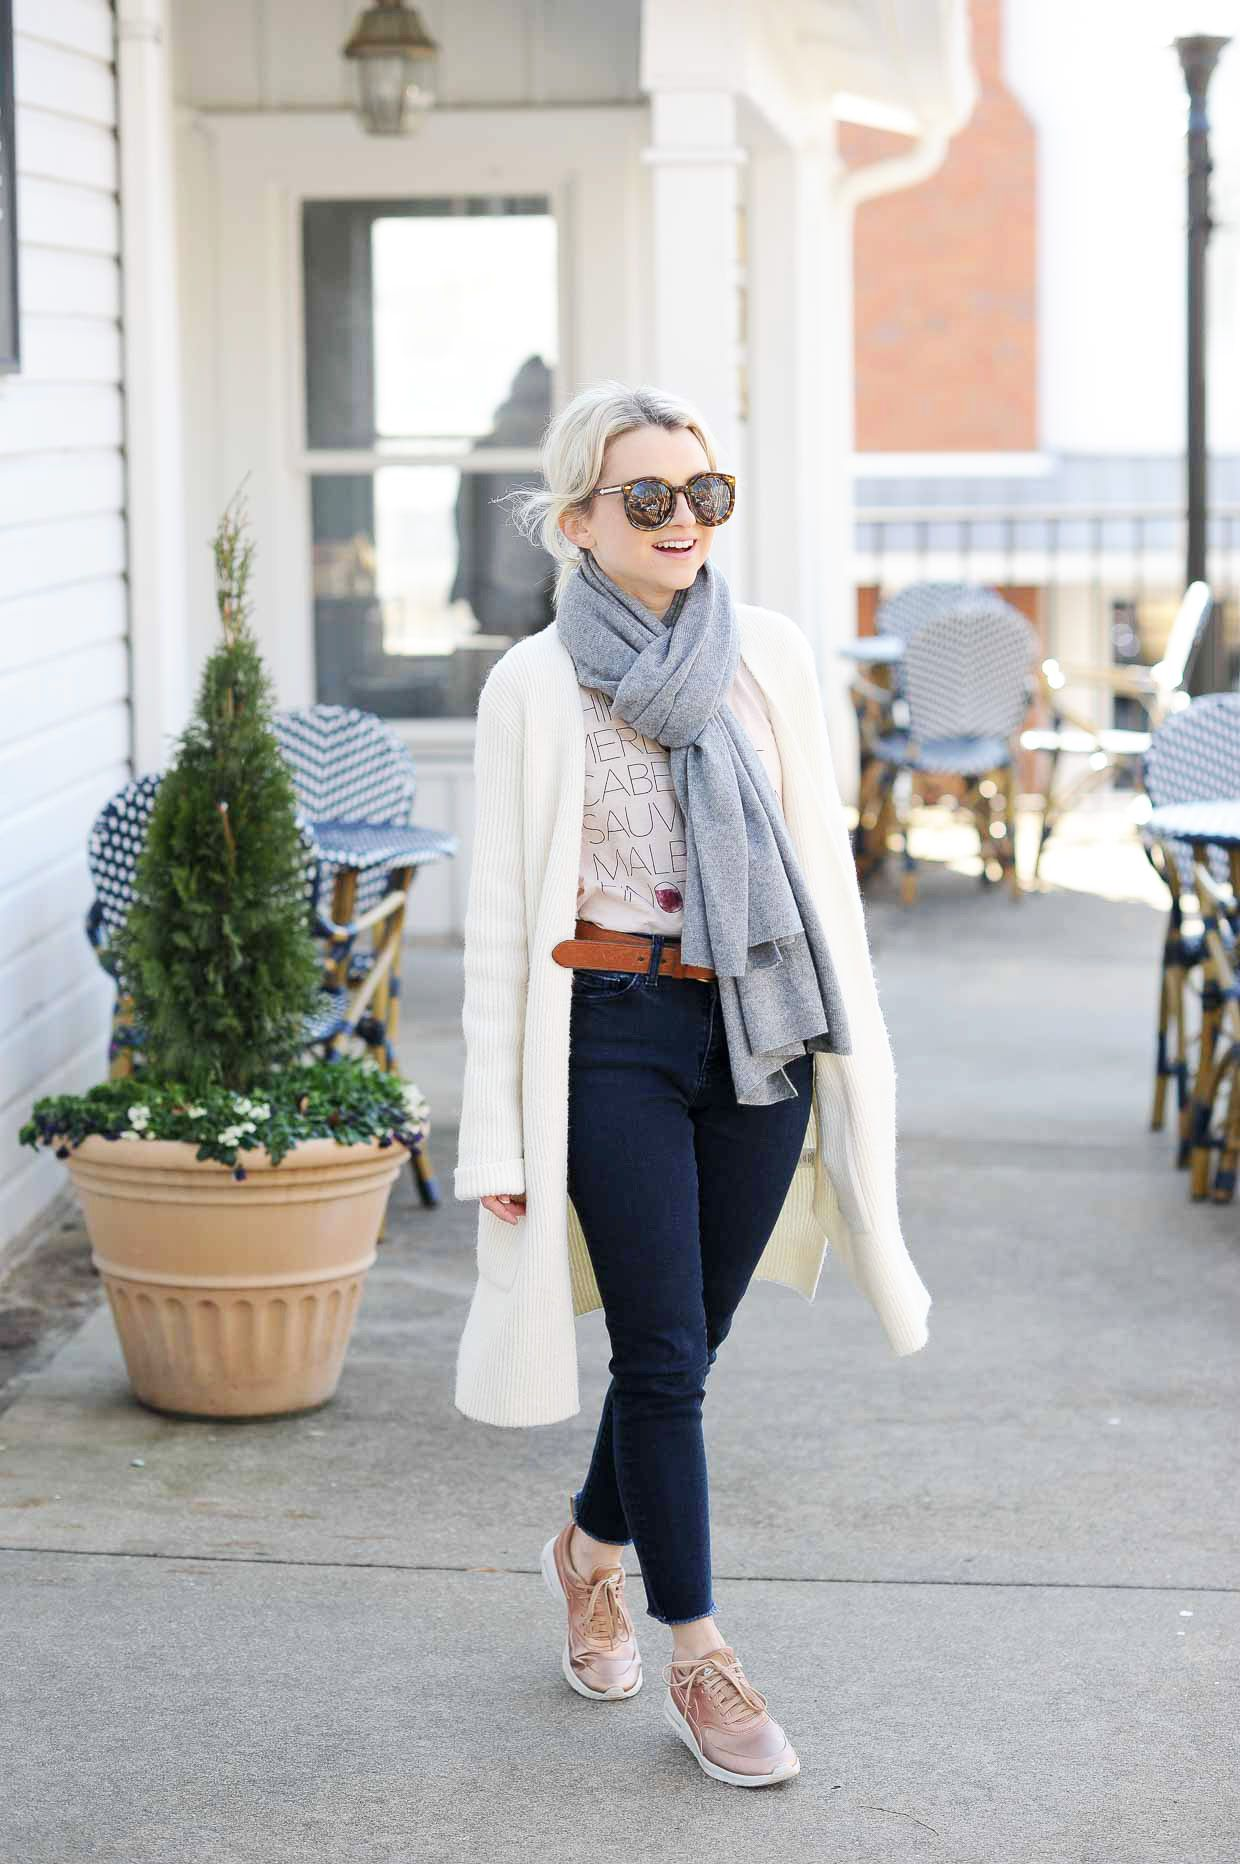 f24a3f09dc24 Blush graphic tee+dark skinny jeans+pink sneakers+white long  cardigan+cognac belt+grey scarf+sunglasses. Fall Casual Outfit 2017